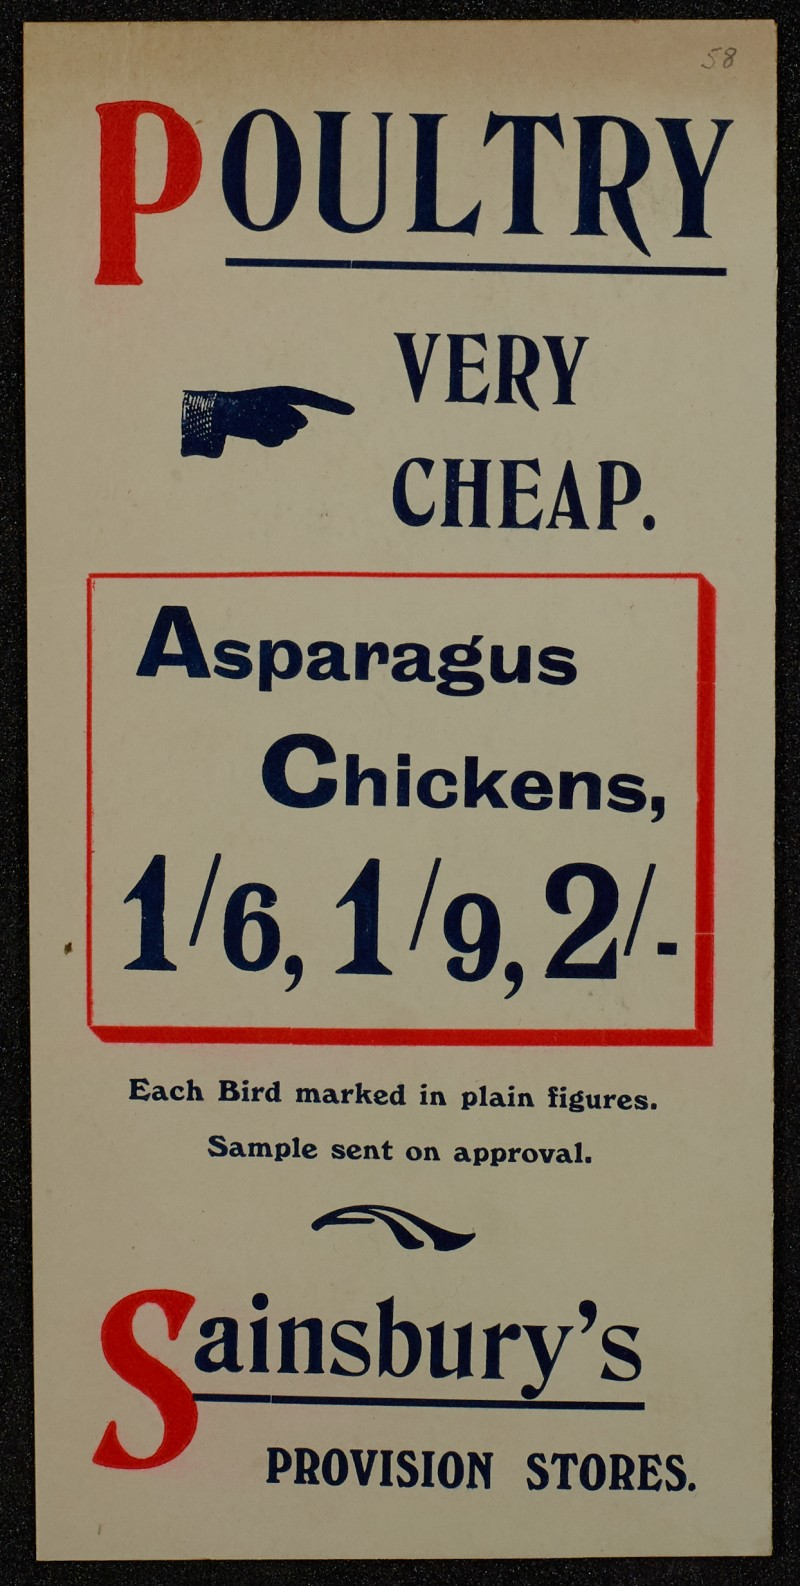 SA/MARK/ADV/1/1/1/1/1/6/1/56 - Advert for poultry, chicken and asparagus [1910]